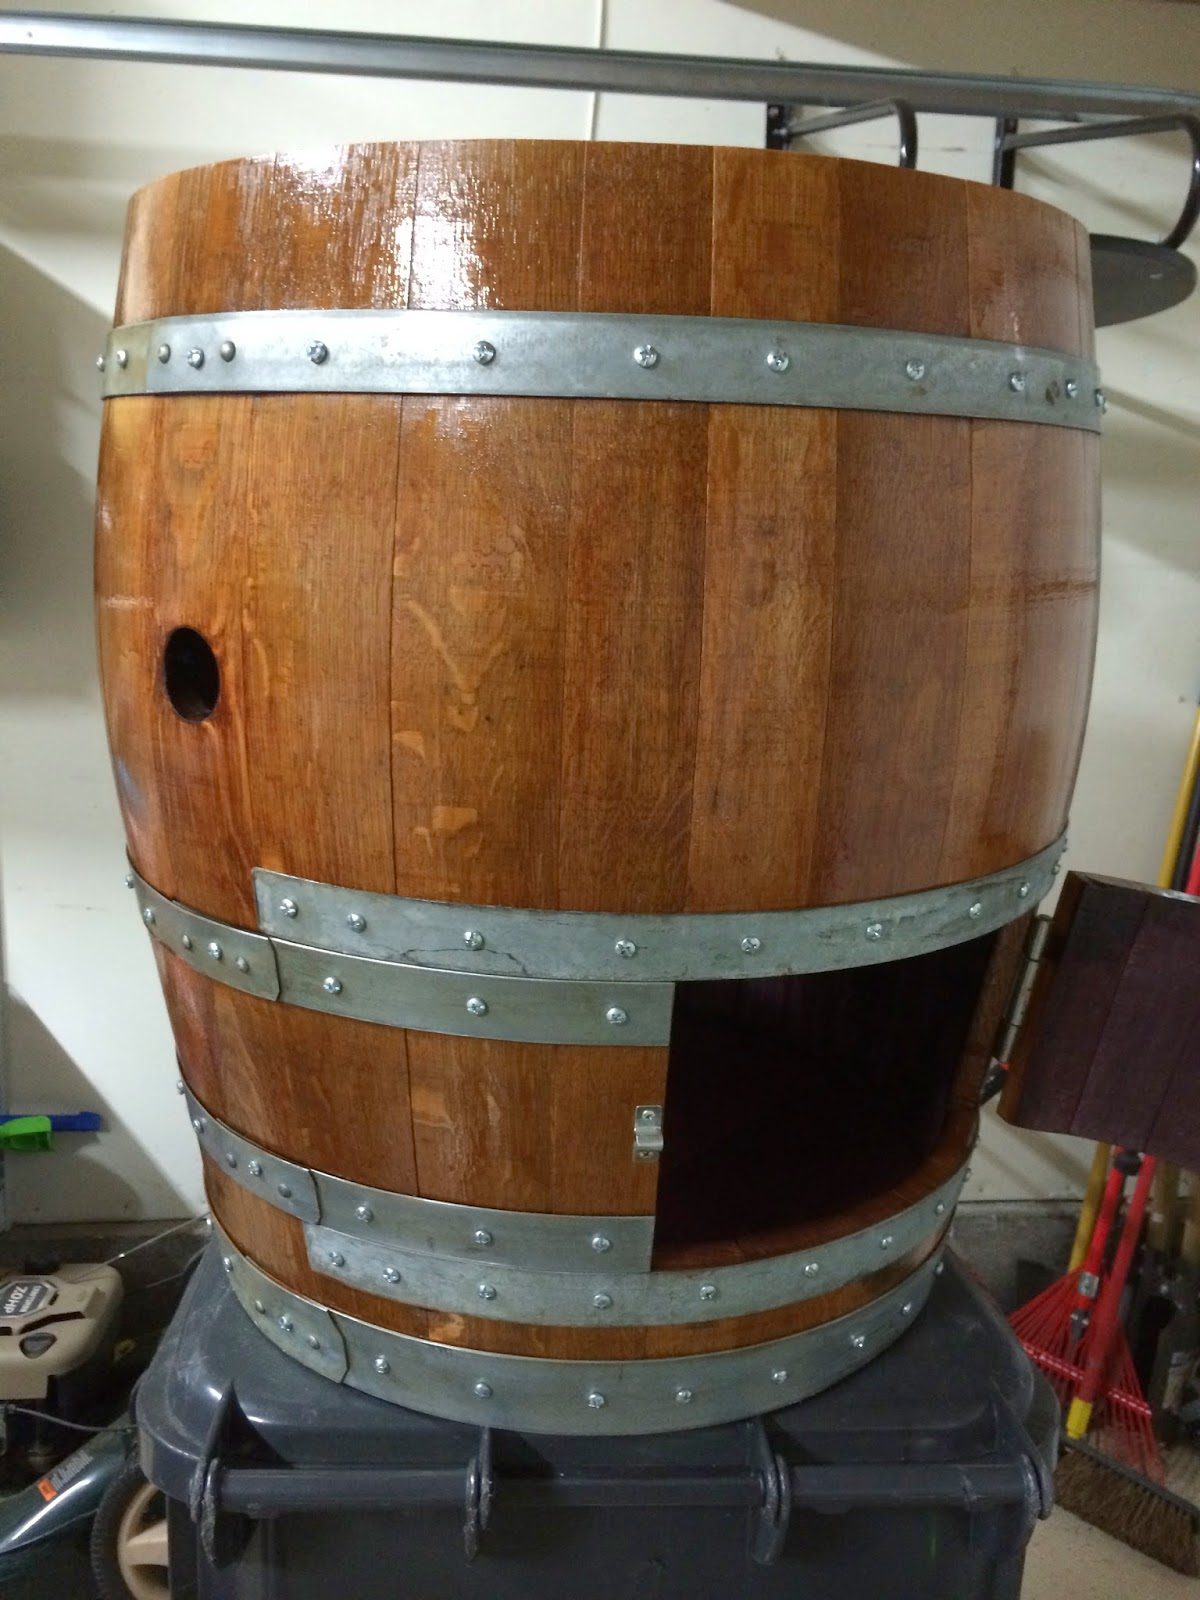 After I Got The Lid Off It Was Time To Stain And Treat Wood You Can Pretty Much Use Wver Want For Outside Of Barrel